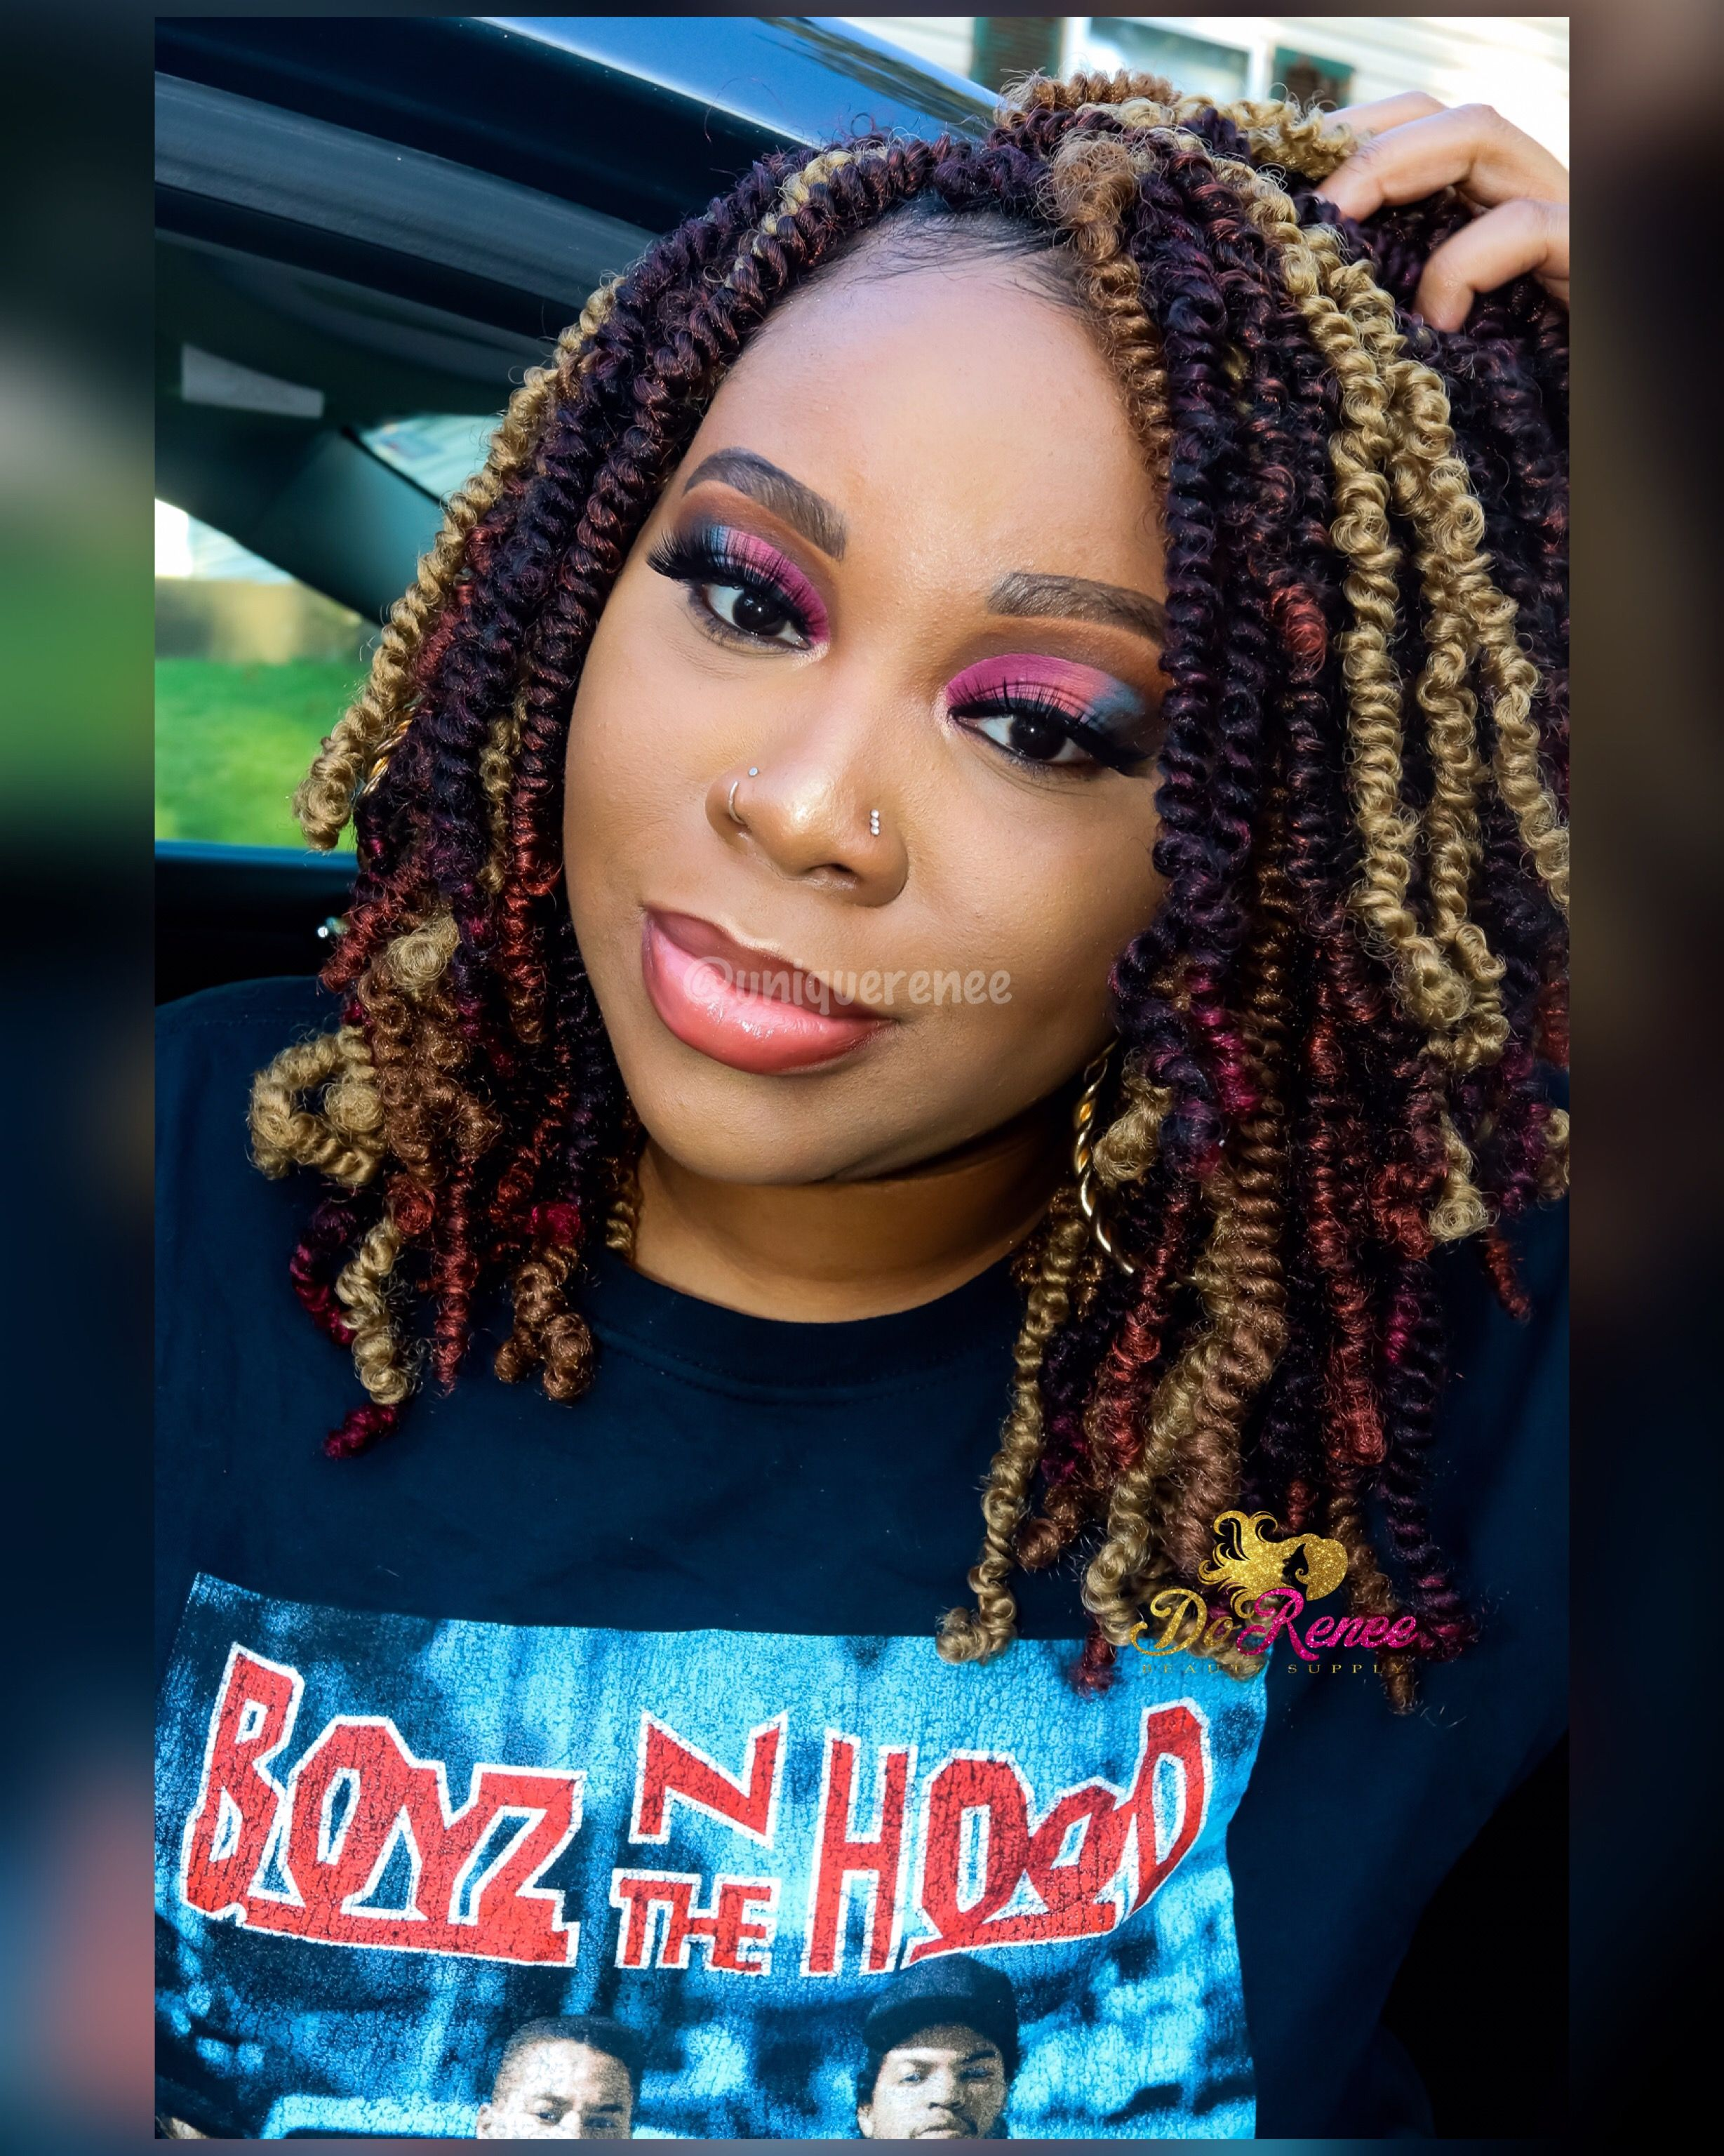 Pin by UniqueRenee on Crochet Braids in 2020 | Fall hair ...